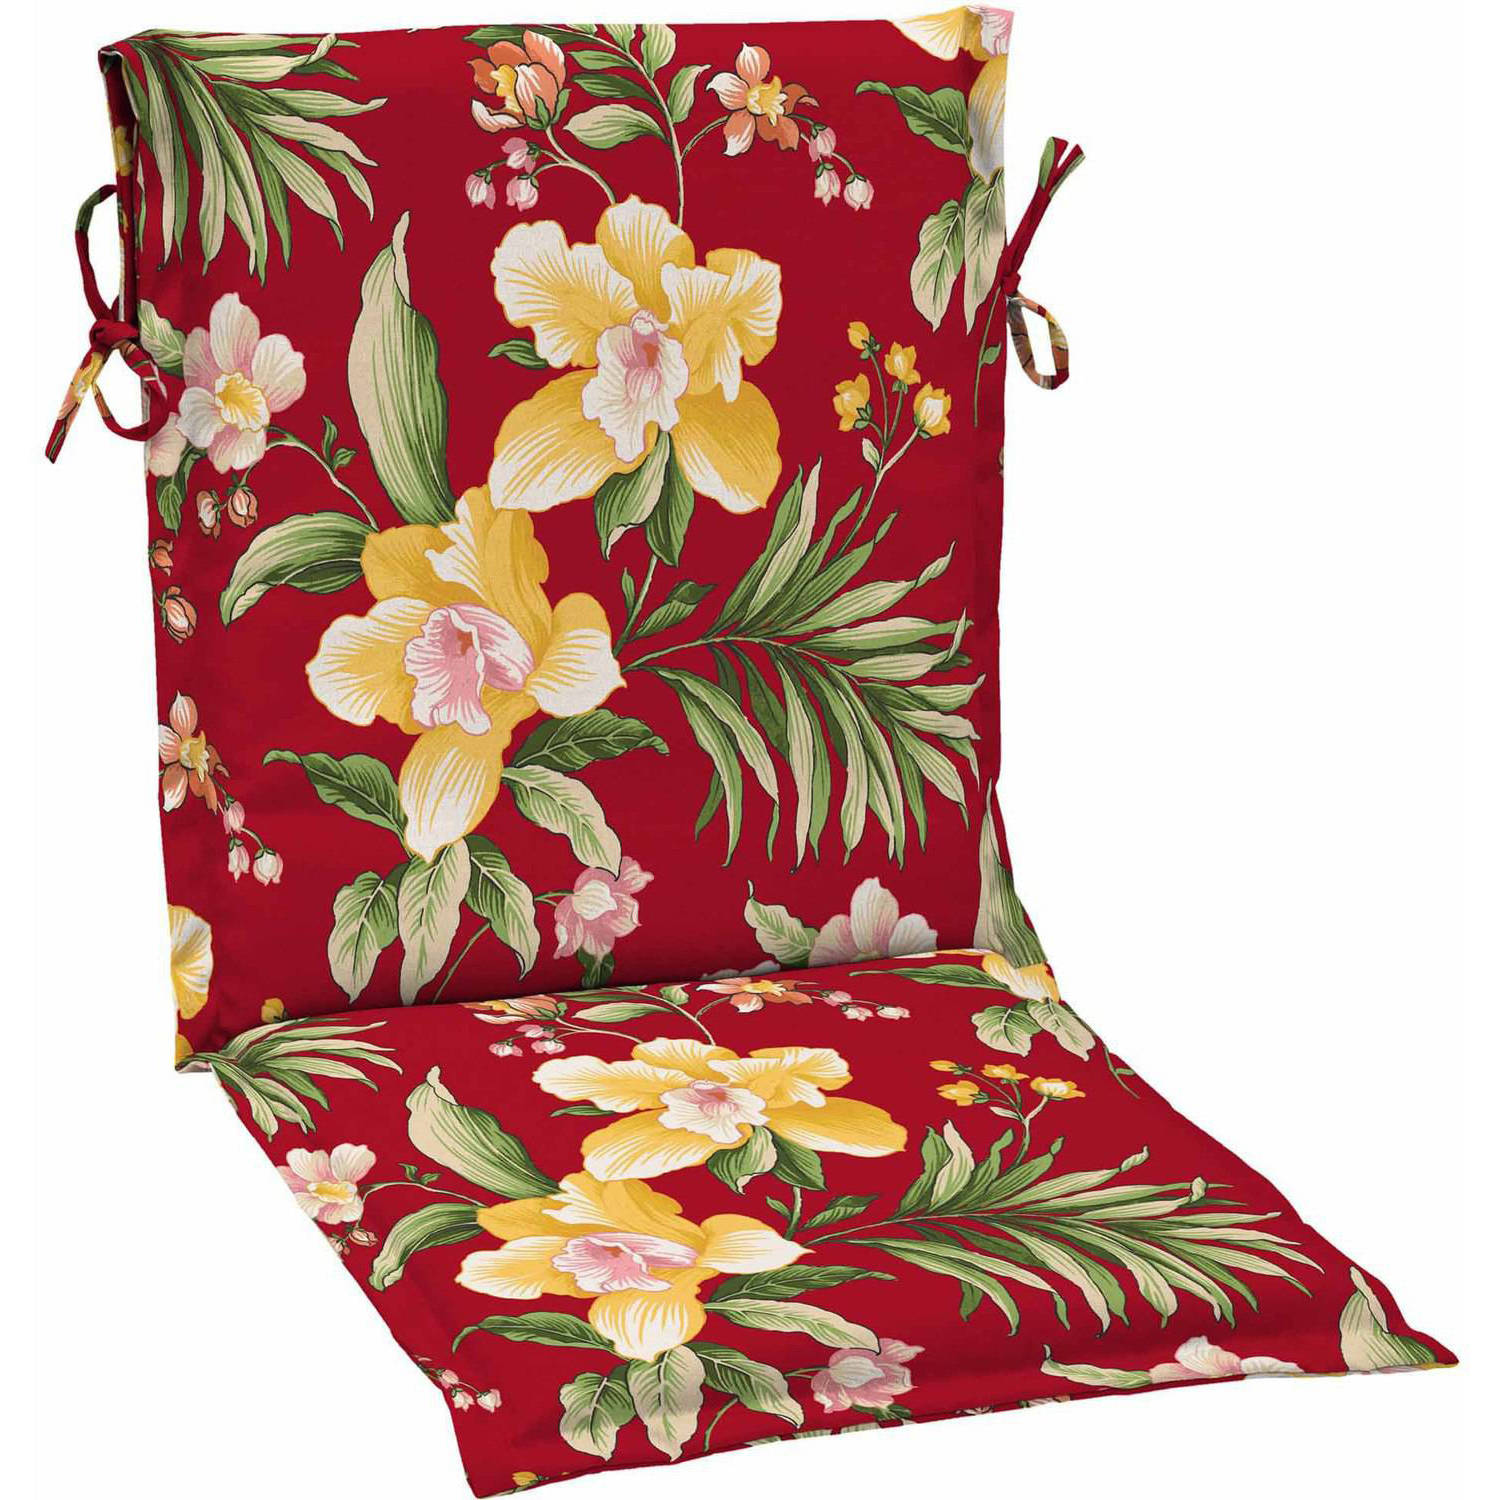 Mainstays Outdoor Patio Sling Chair Cushion, Multiple Patterns